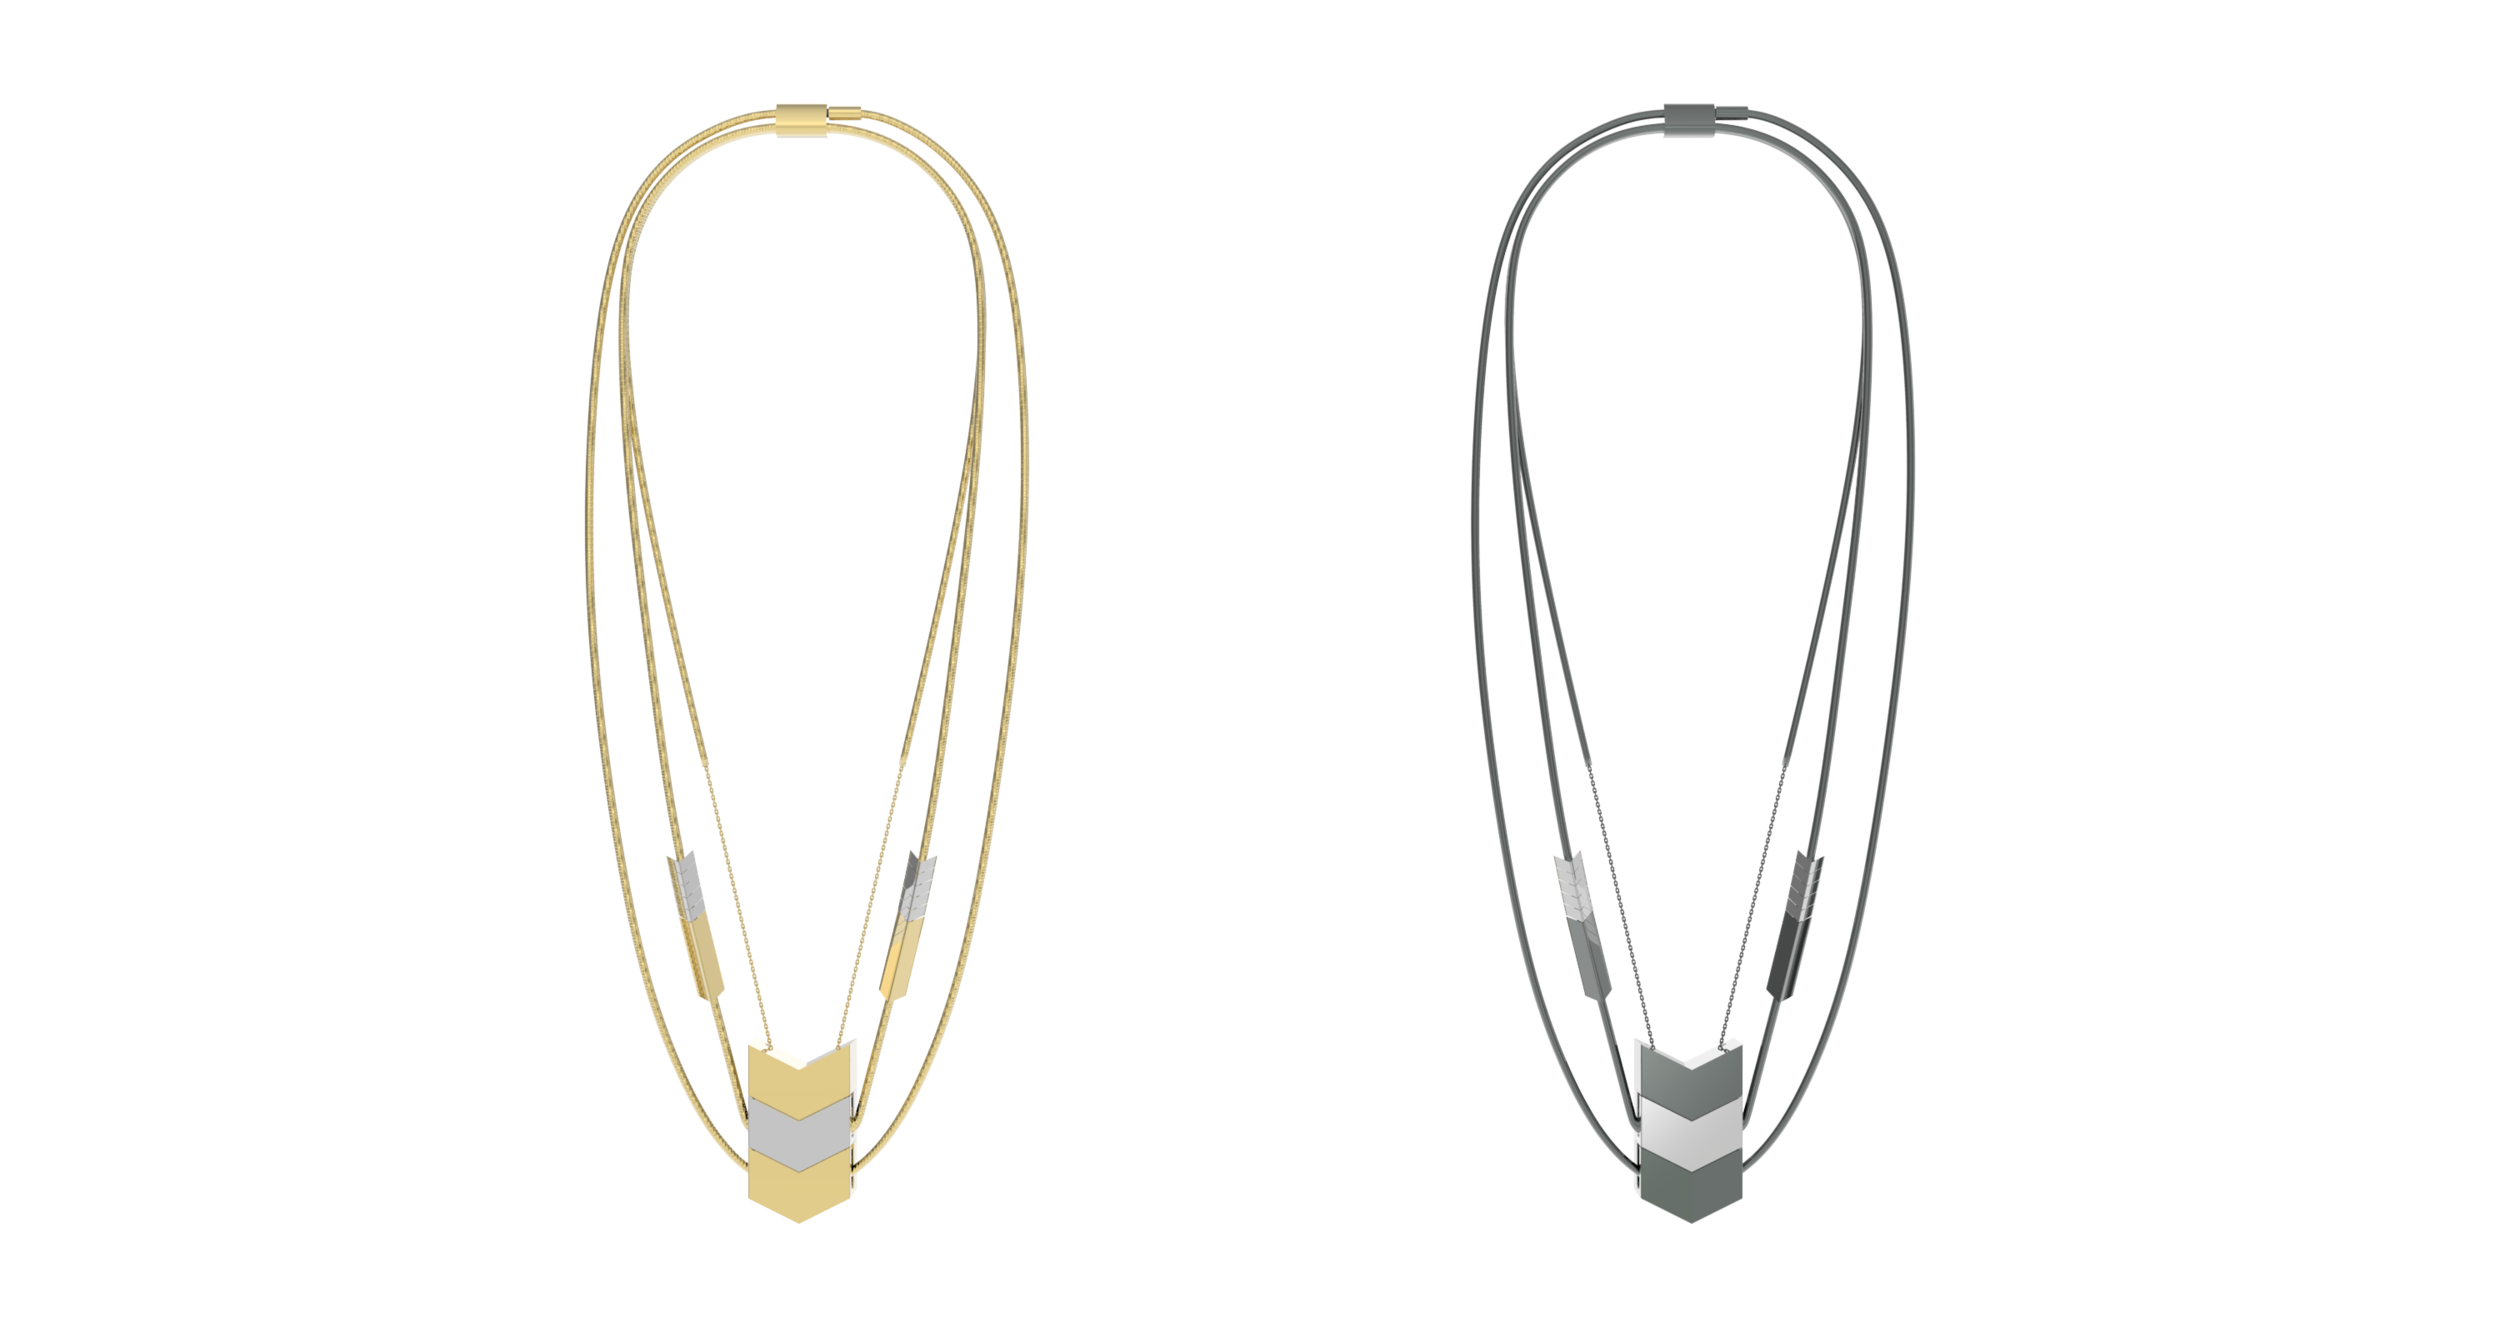 Tinsel_Earbud Necklace Line 04_01.177.png